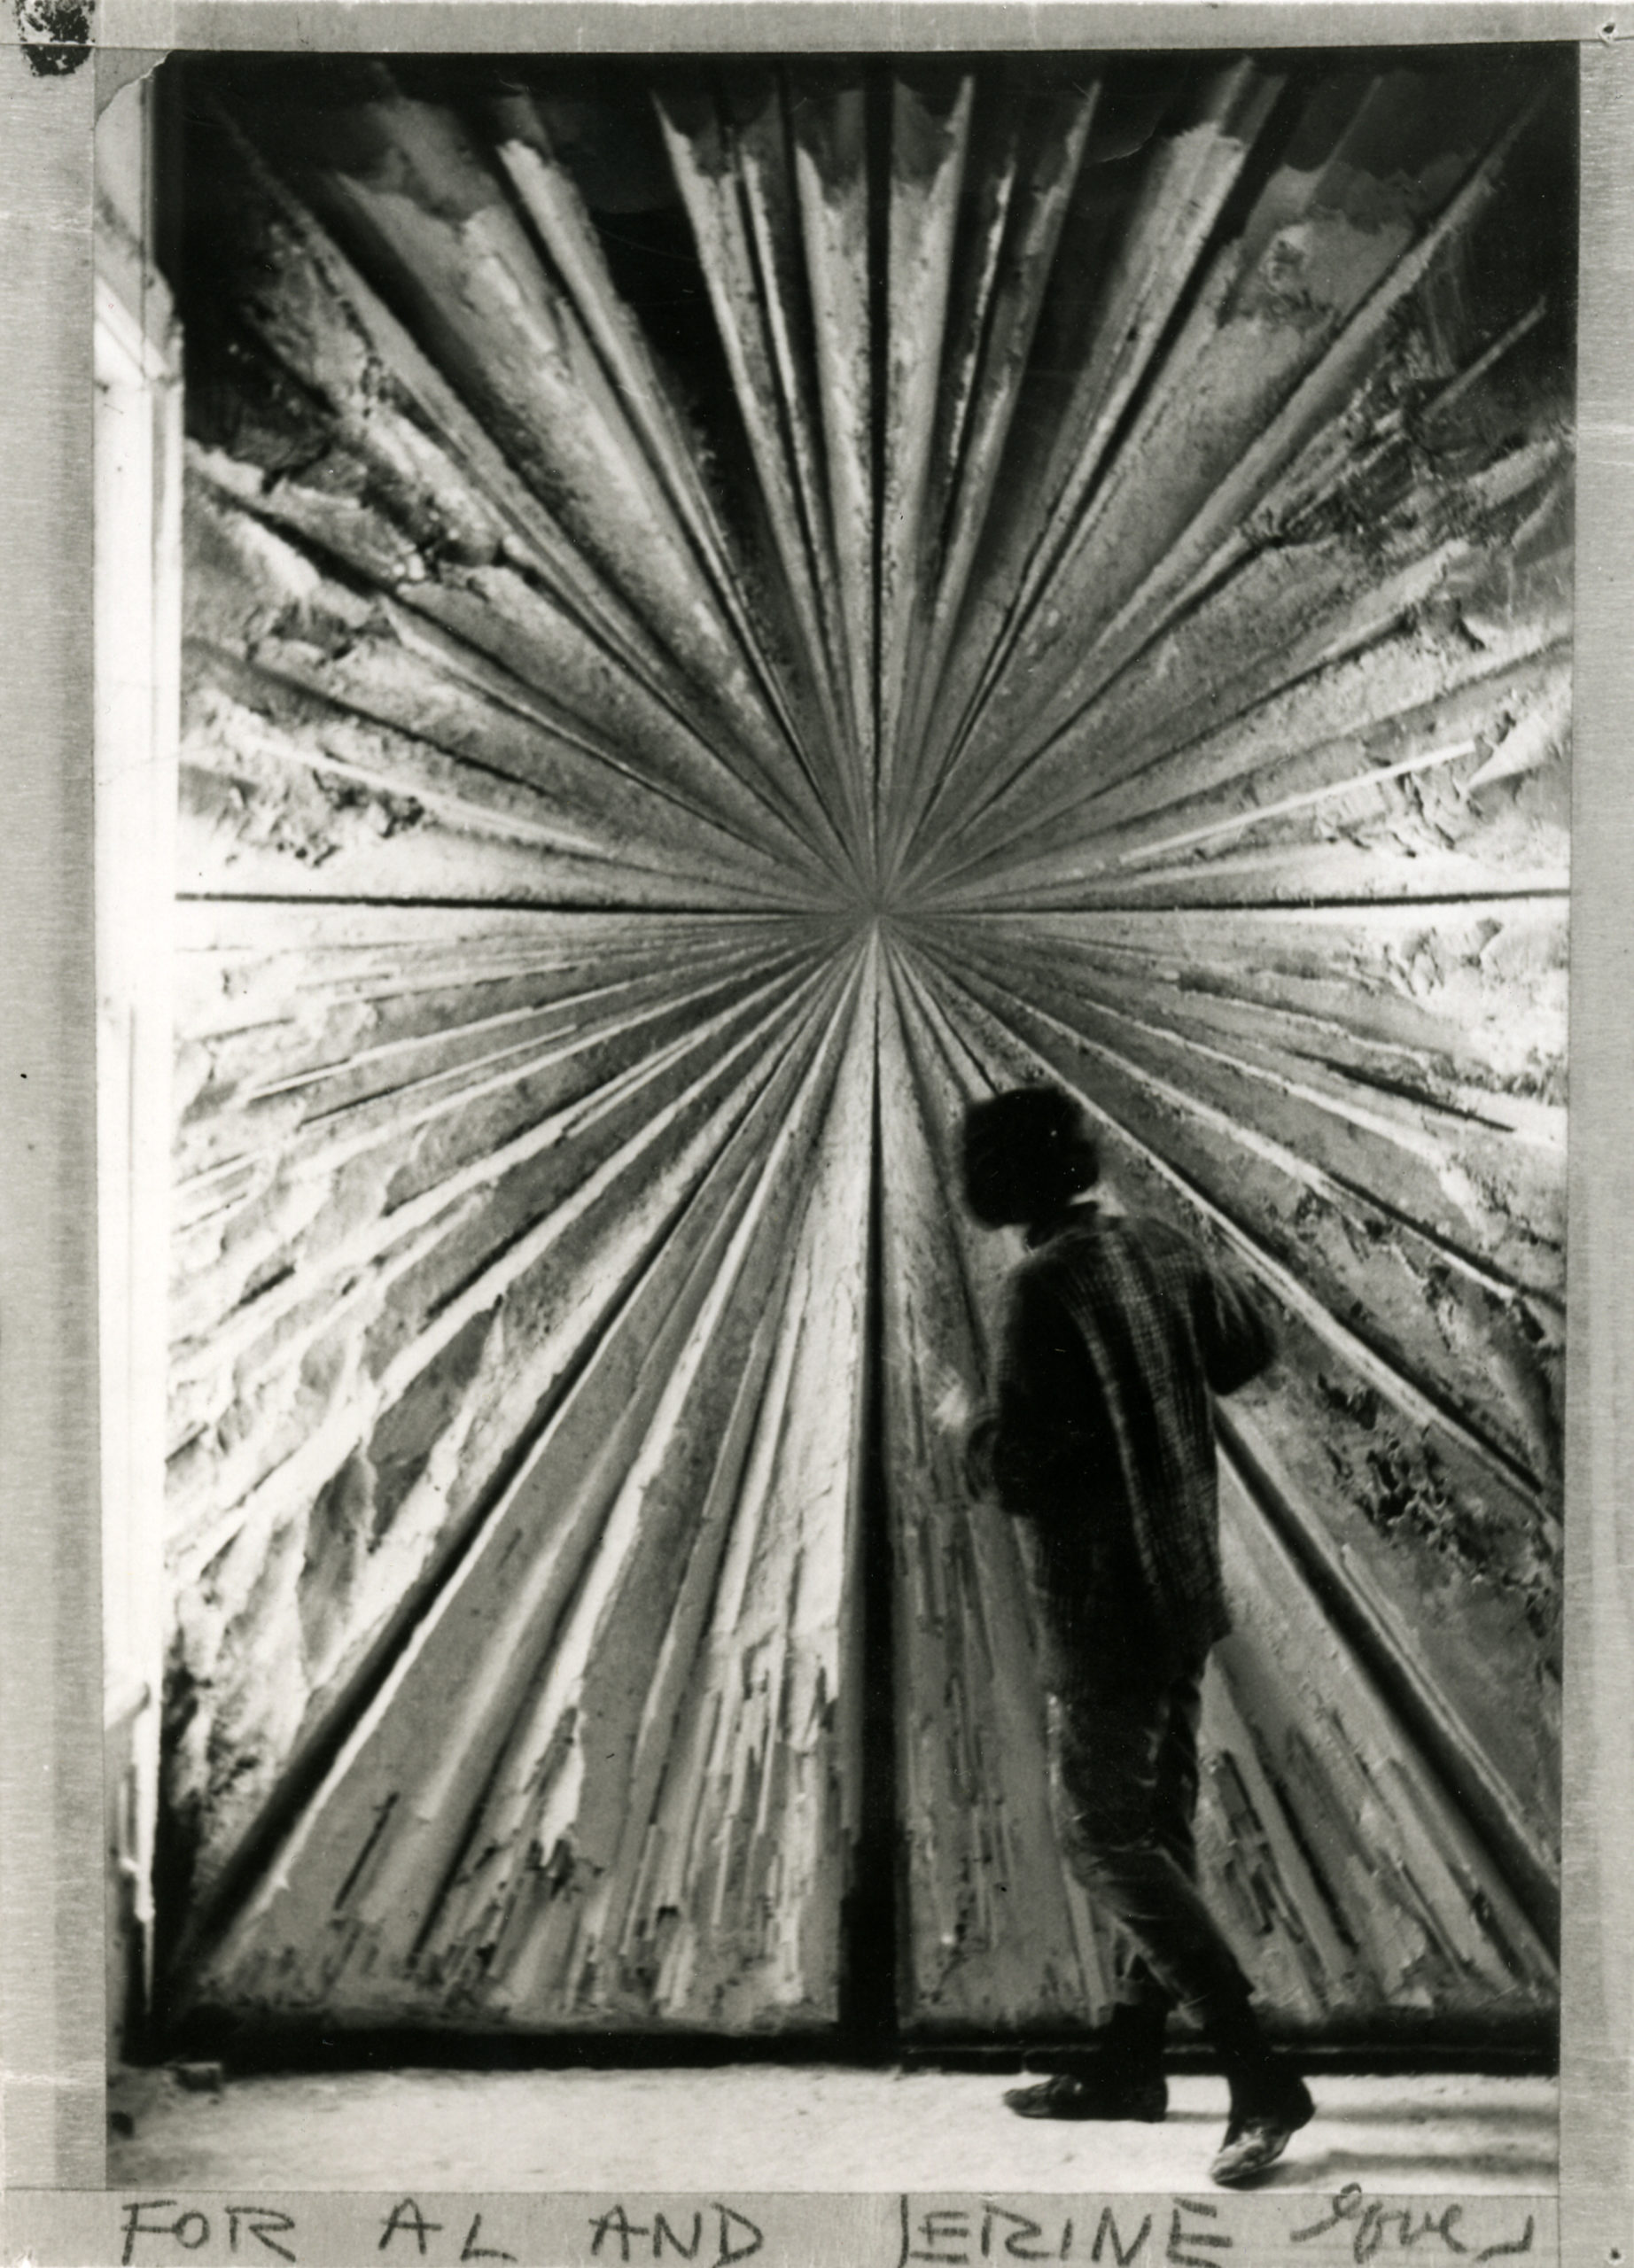 Jay DeFeo in The Wall Street Journal